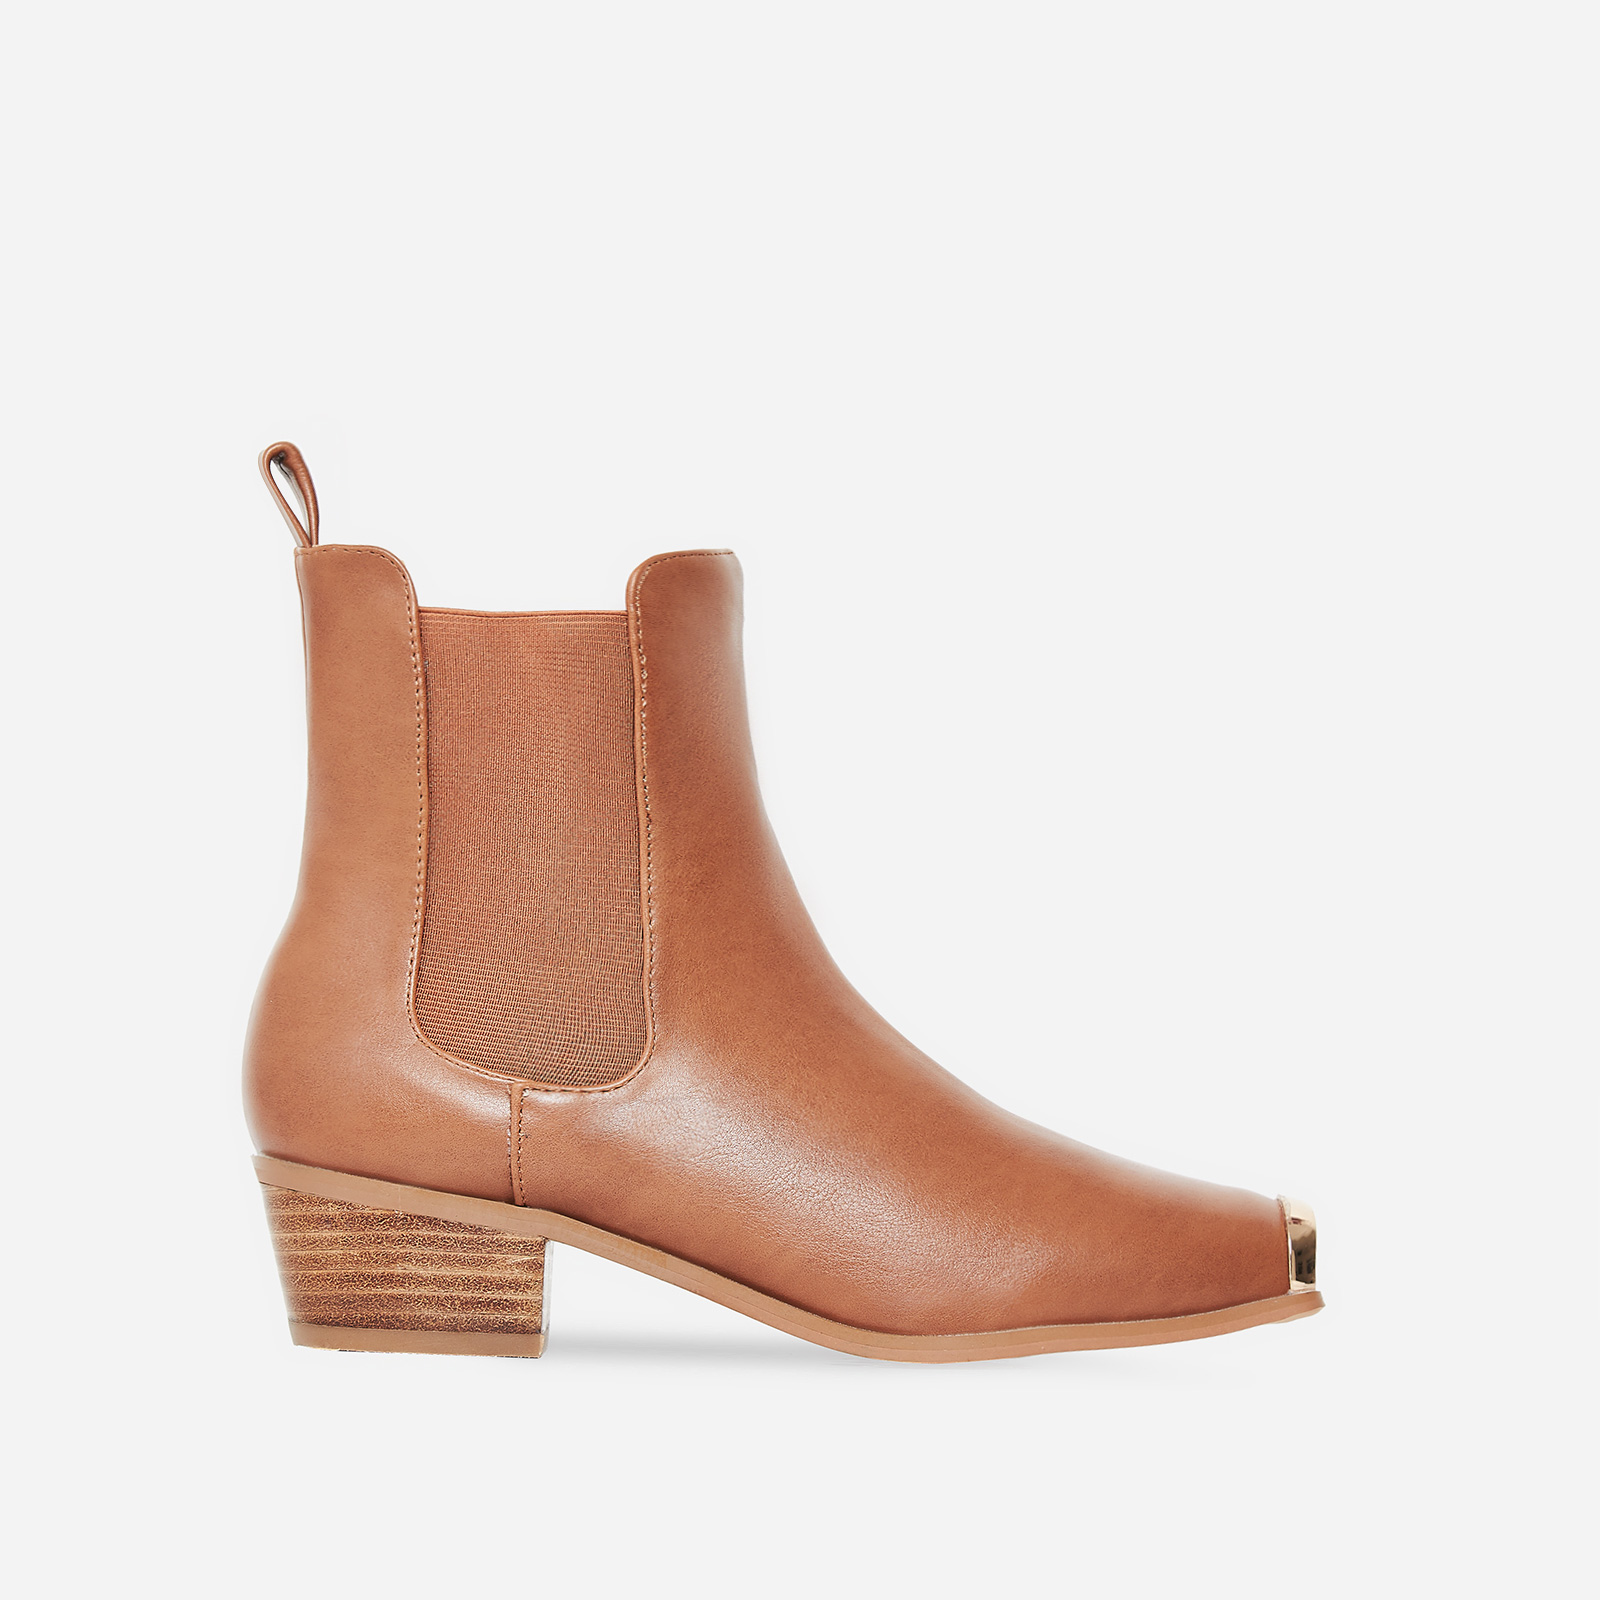 Hauser Toe Cap Western Ankle Boot In Tan Faux Leather